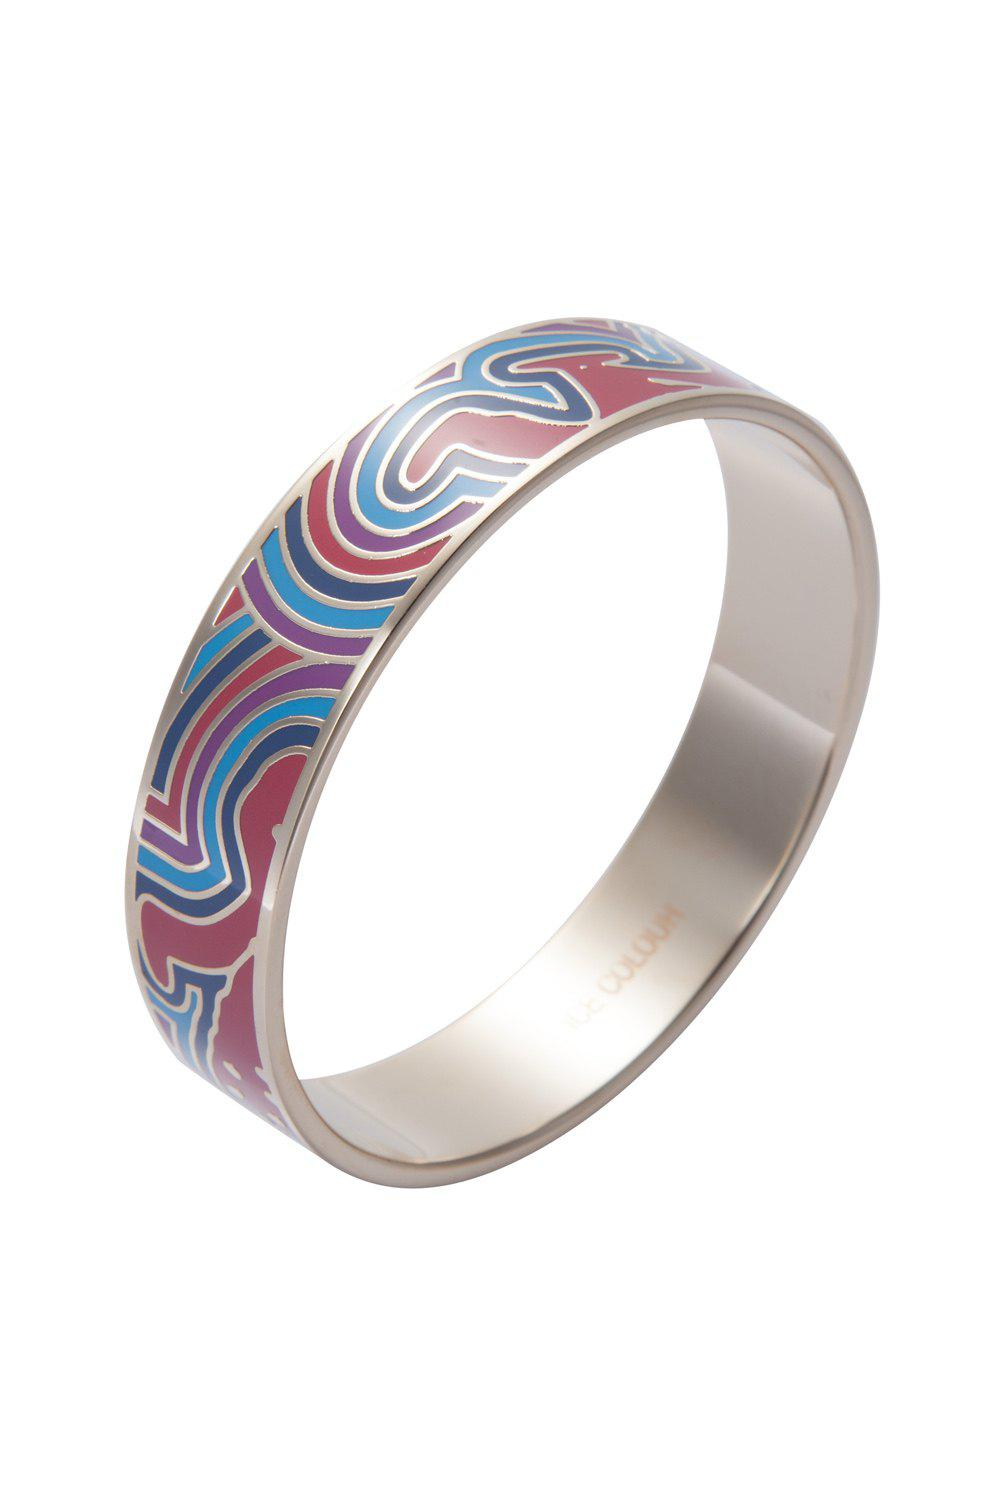 Chic Round Printed Bracelet - COLORMIX